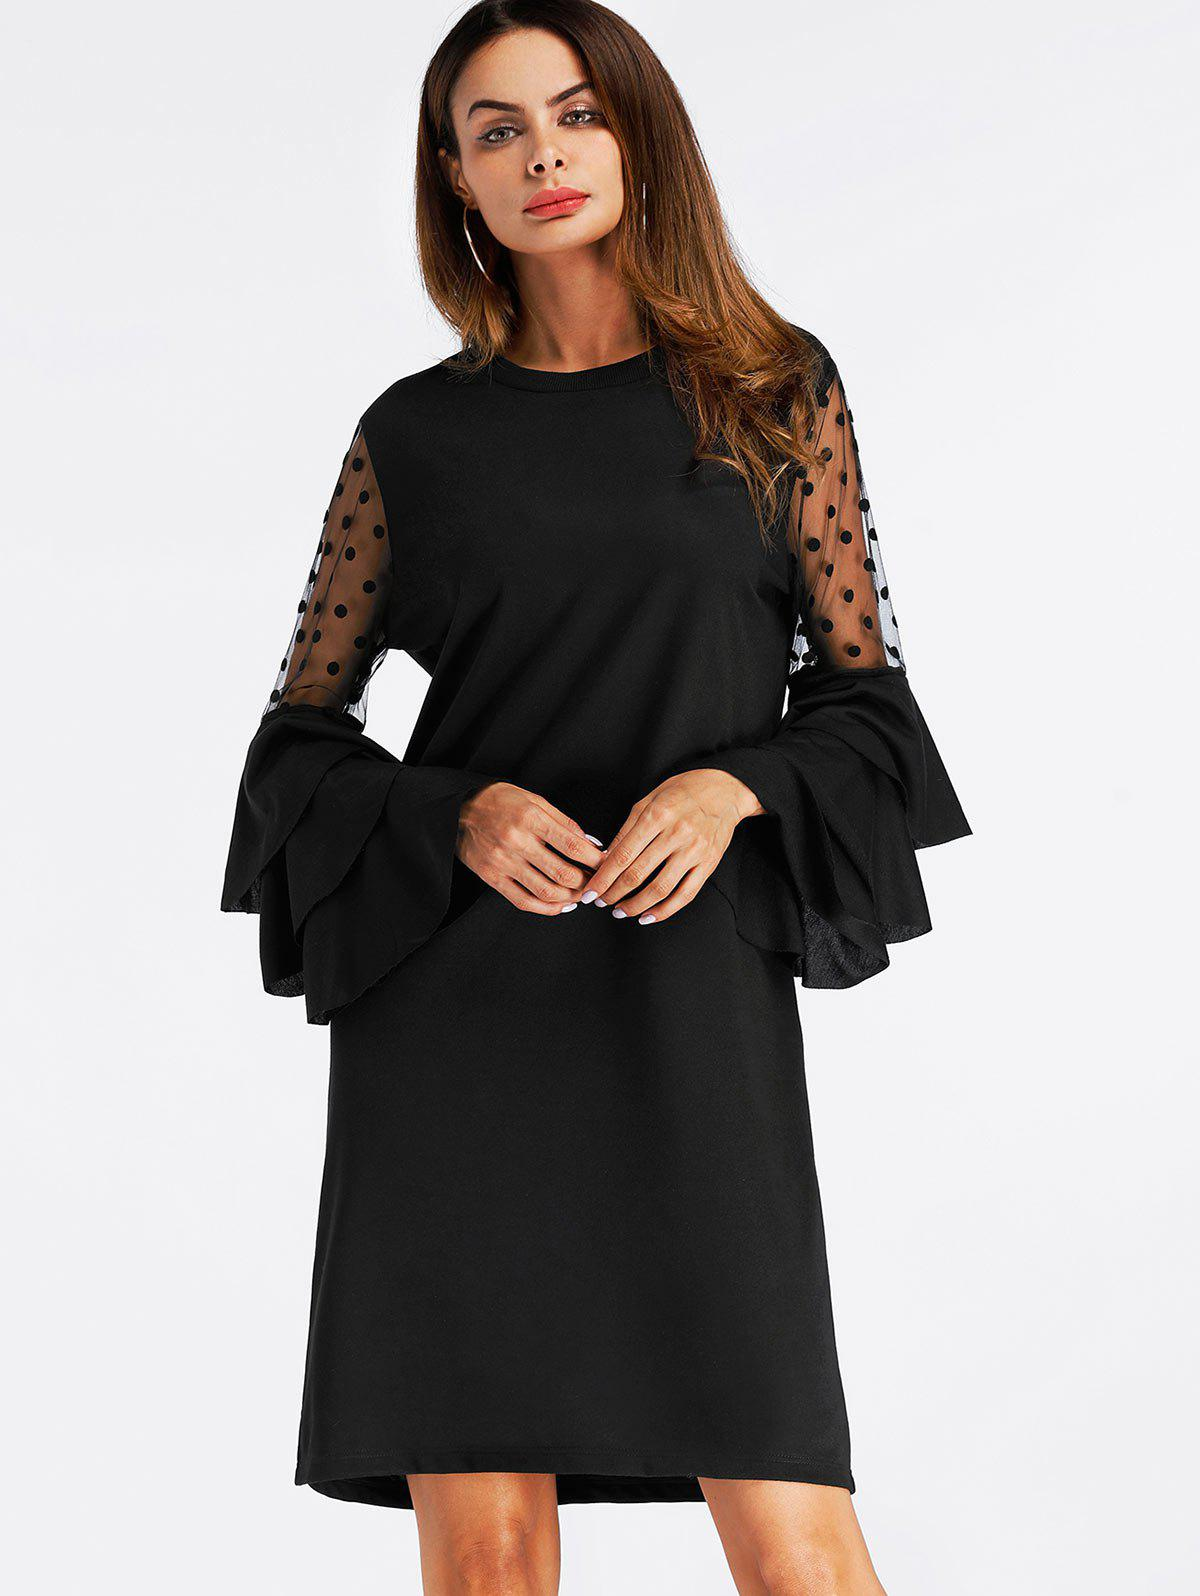 Mini Bell Sleeve Mesh Insert Shift Dress - BLACK S